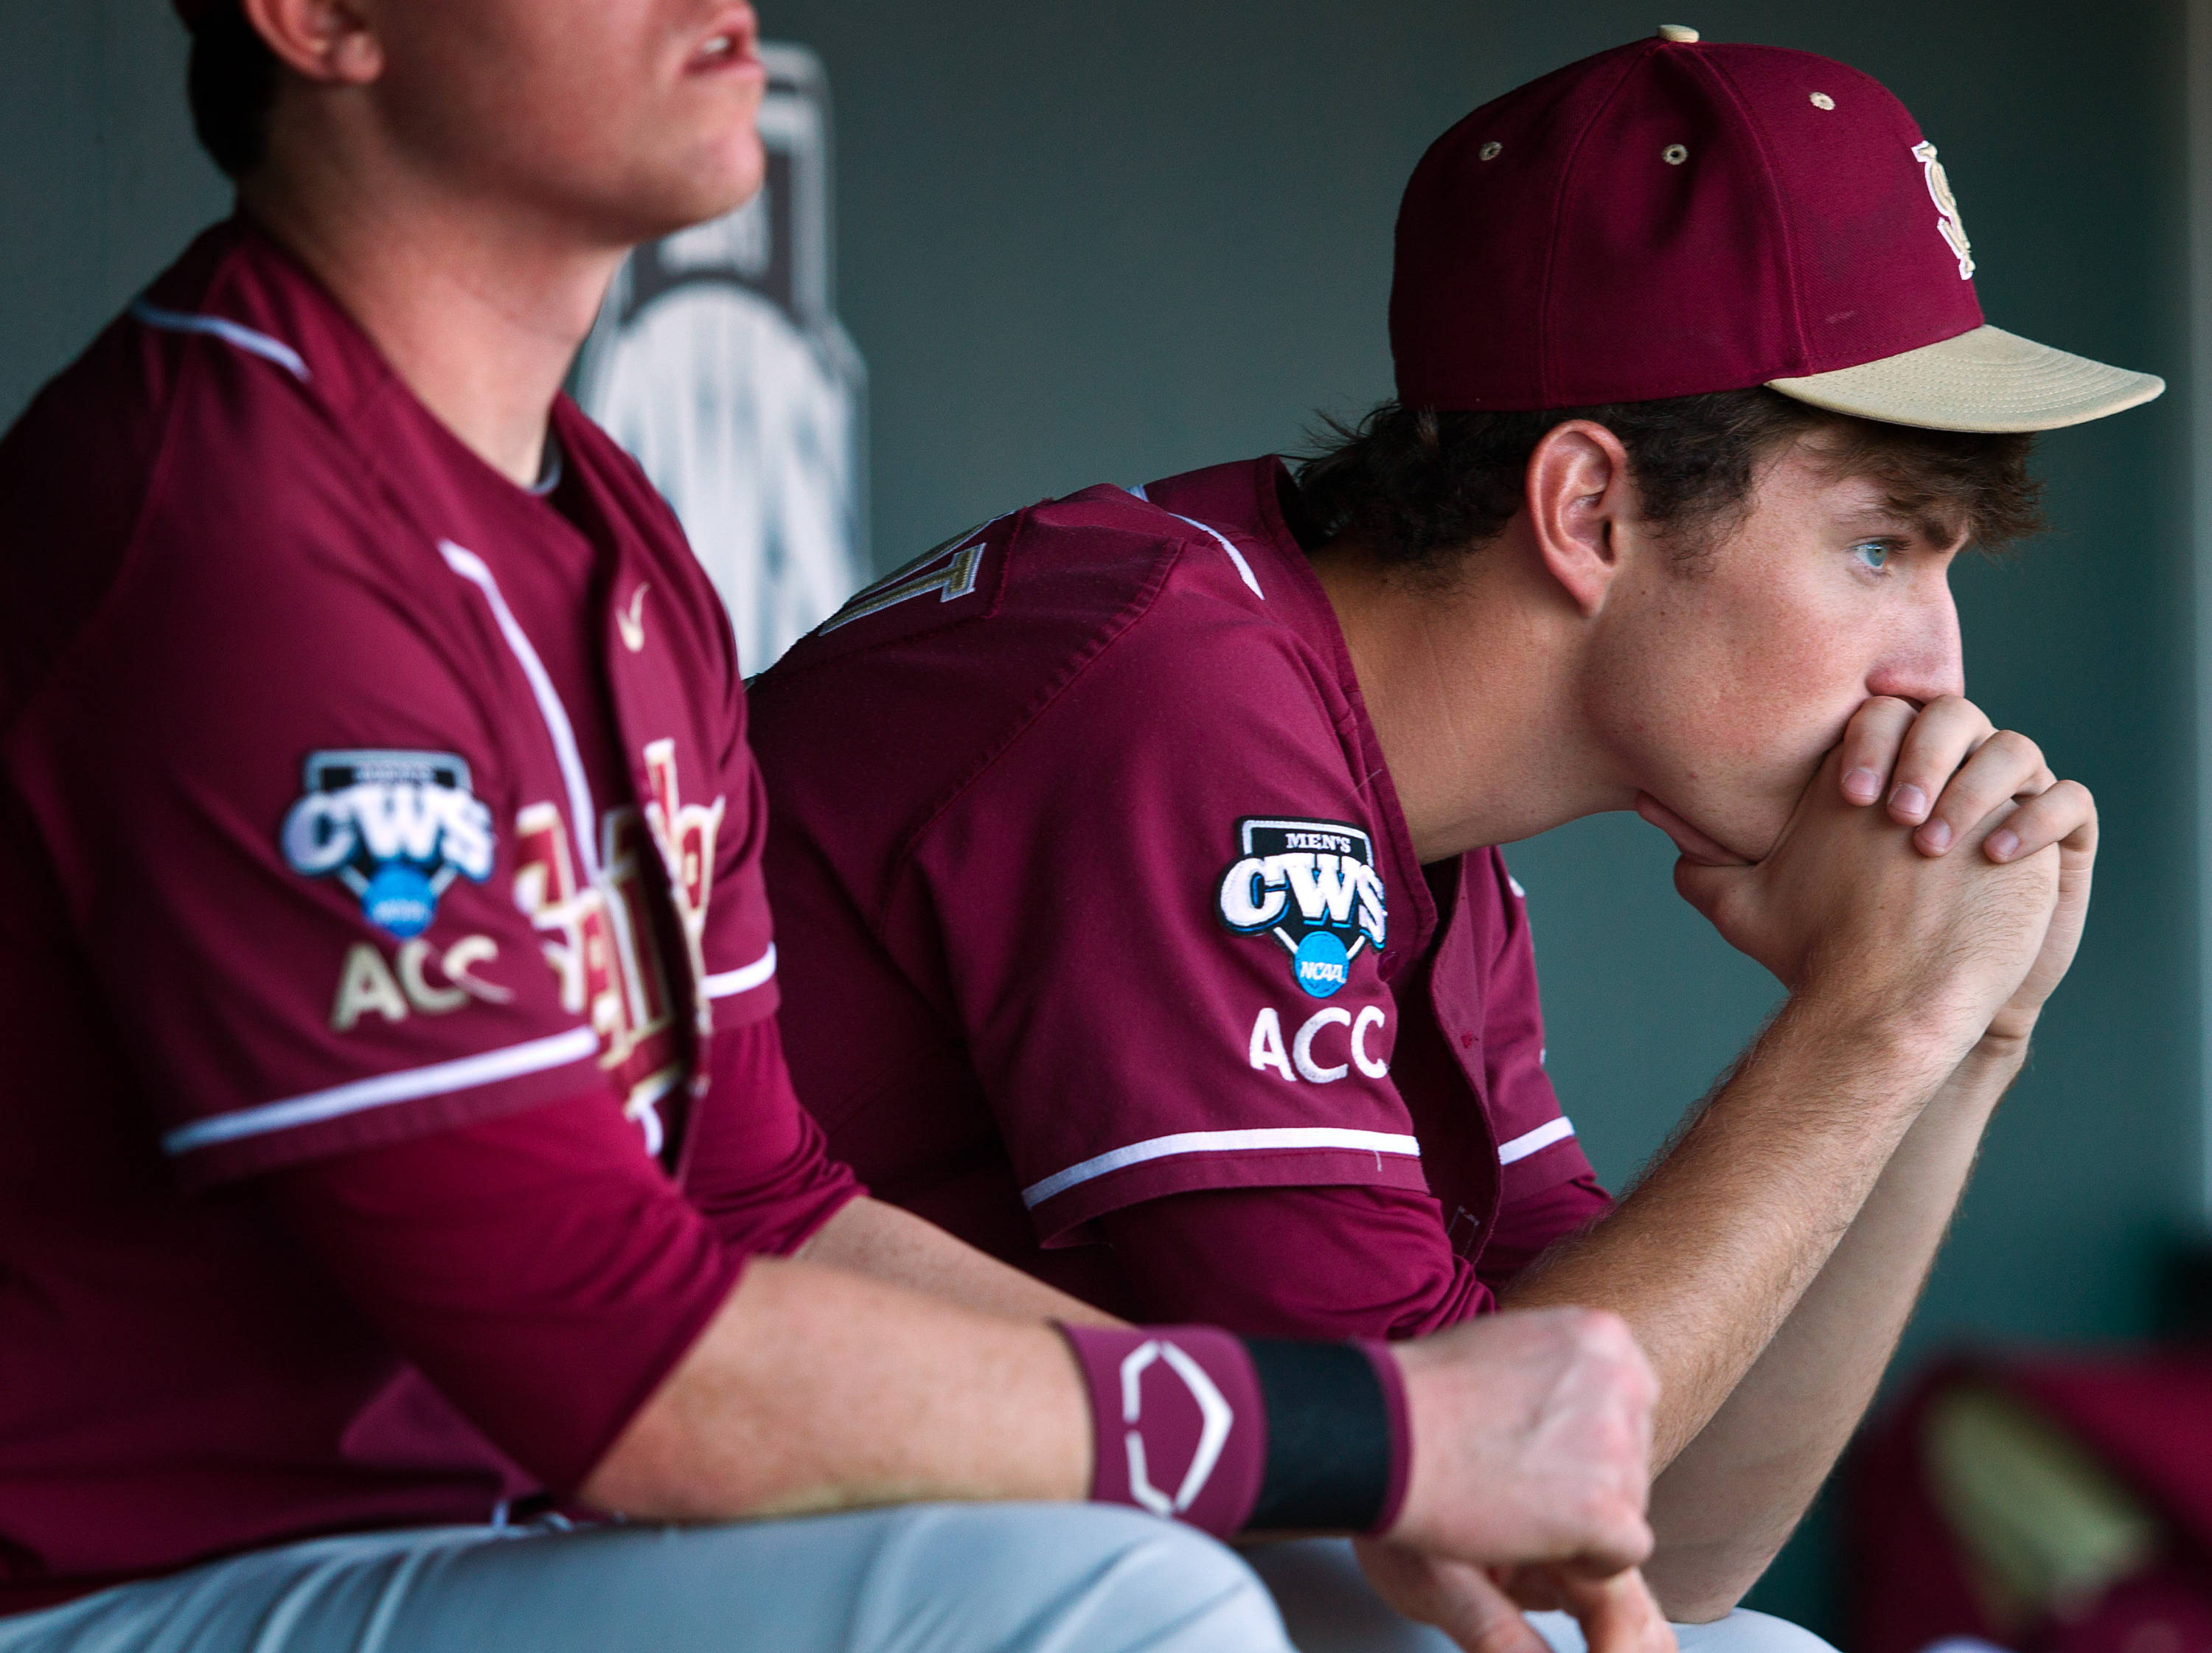 Florida State starting pitcher Brandon Leibrandt, right, watches the end of the game from the dugout as Arizona wins 10-3. (AP Photo/Omaha World-Herald, Rebecca S. Gratz)